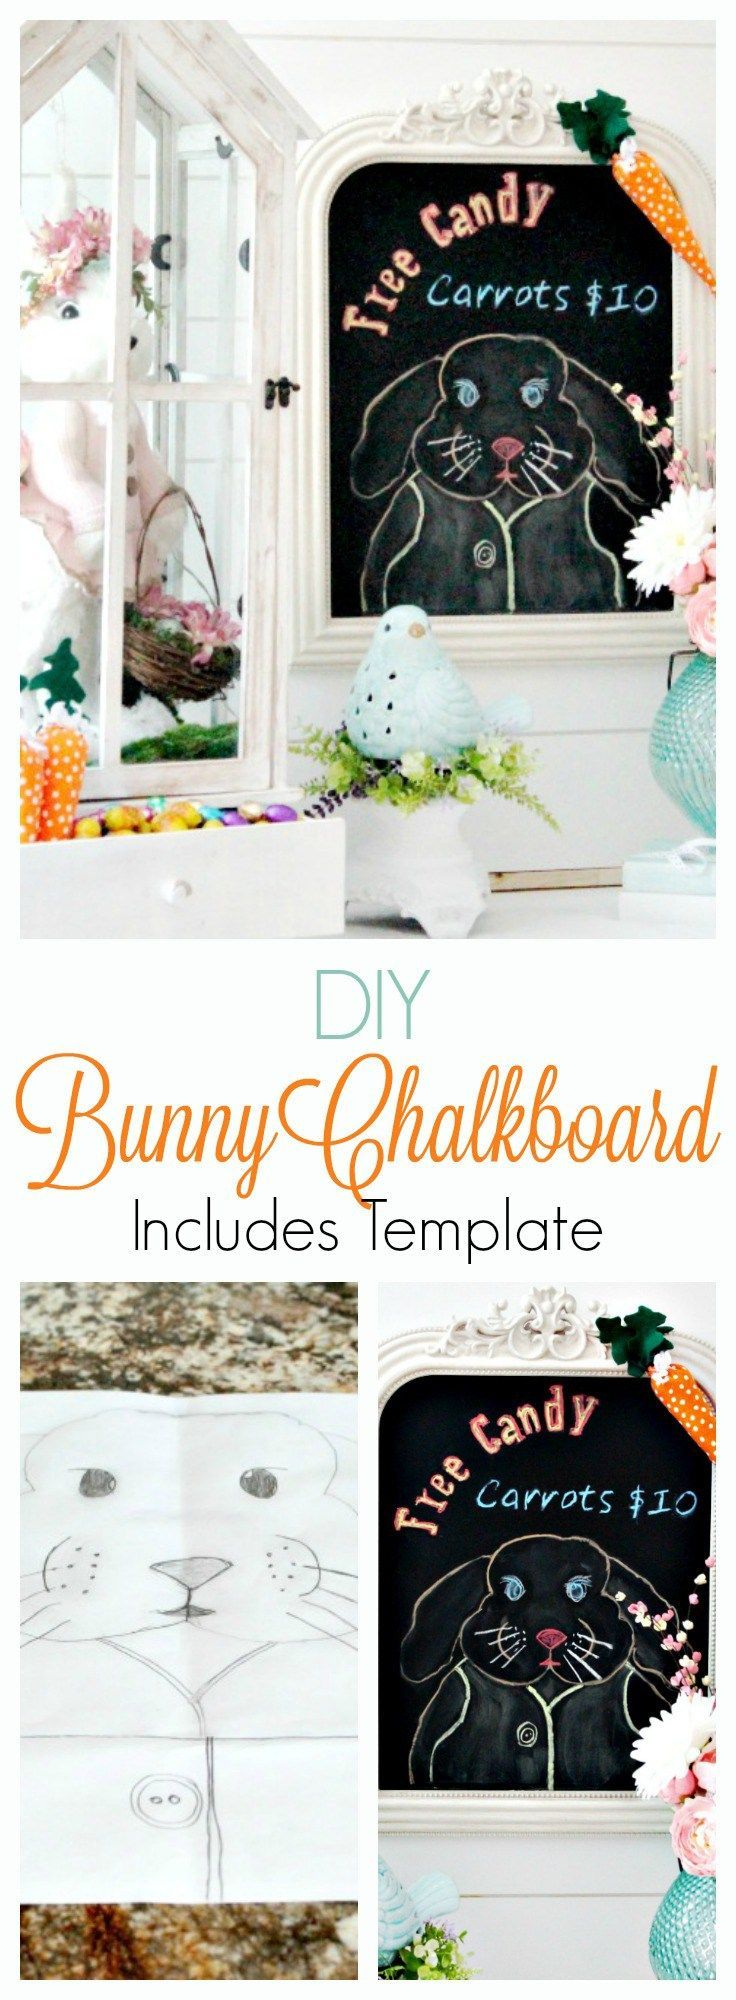 A chalkboard bunny Easter craft used for your Easter decorating ideas. DIY Easter decorations, DIYspring decor, easter bunny crafts, chalkboard bunny, Easter chalkboard, Easter chalkboard designs